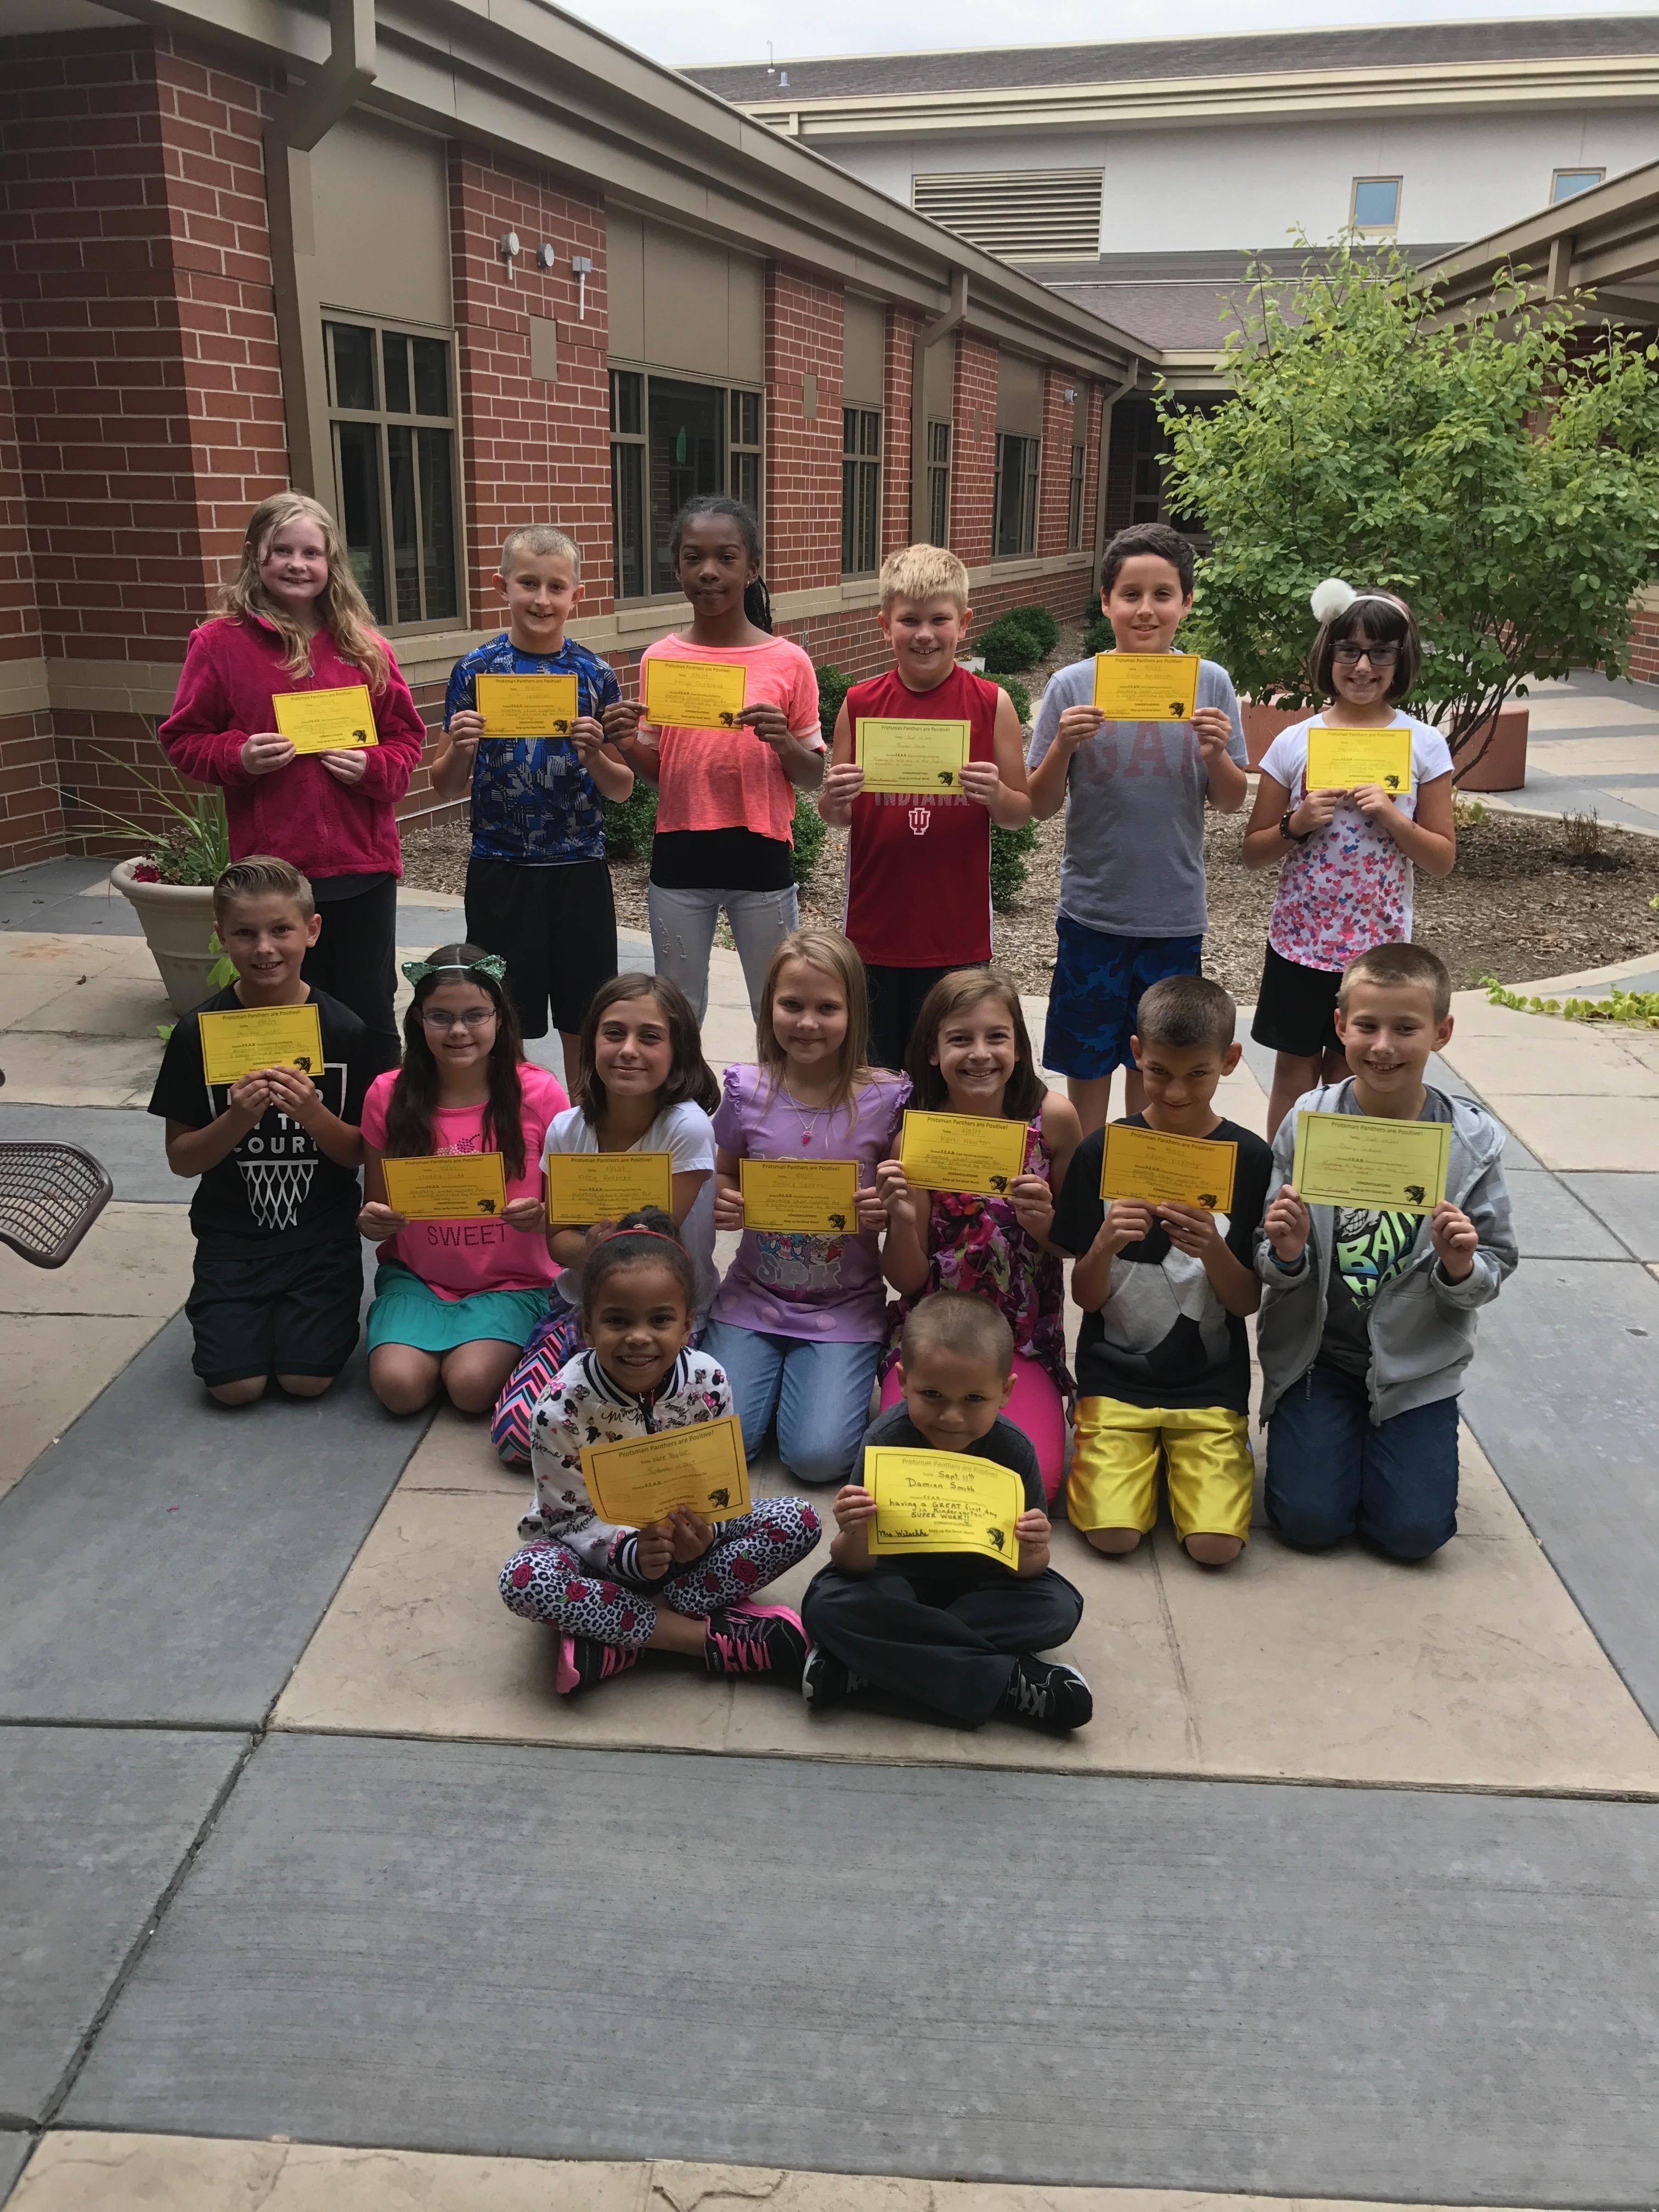 Congratulations to the Protsman students who earned F.E.A.R. (Face Everything and Rise) certificates for the month of September. Way to persevere!